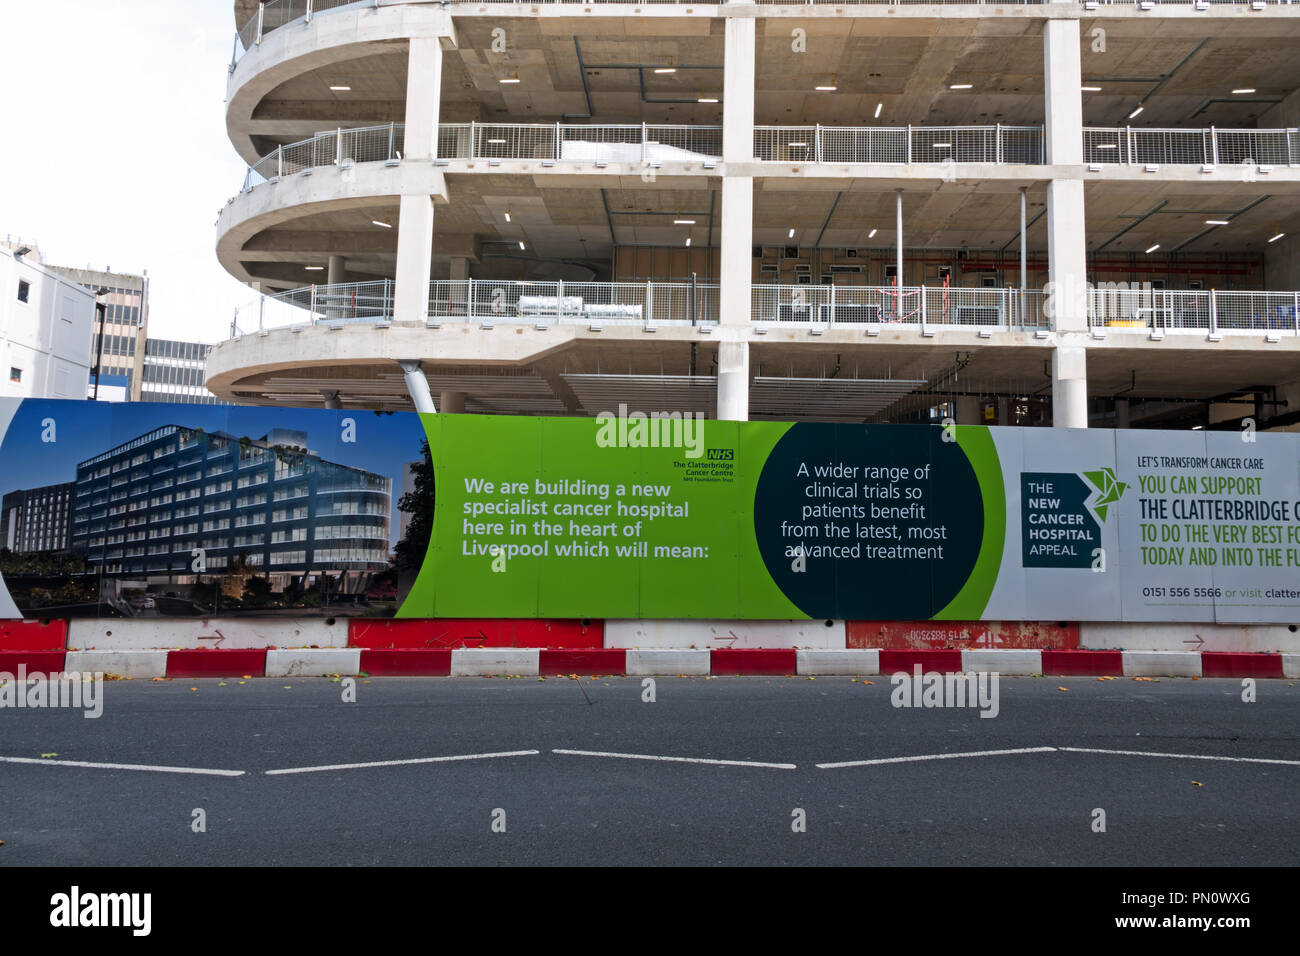 The new Clatterbridge Cancer Centre Liverpool being built next to the new Royal Liverpool University Hospital. - Stock Image